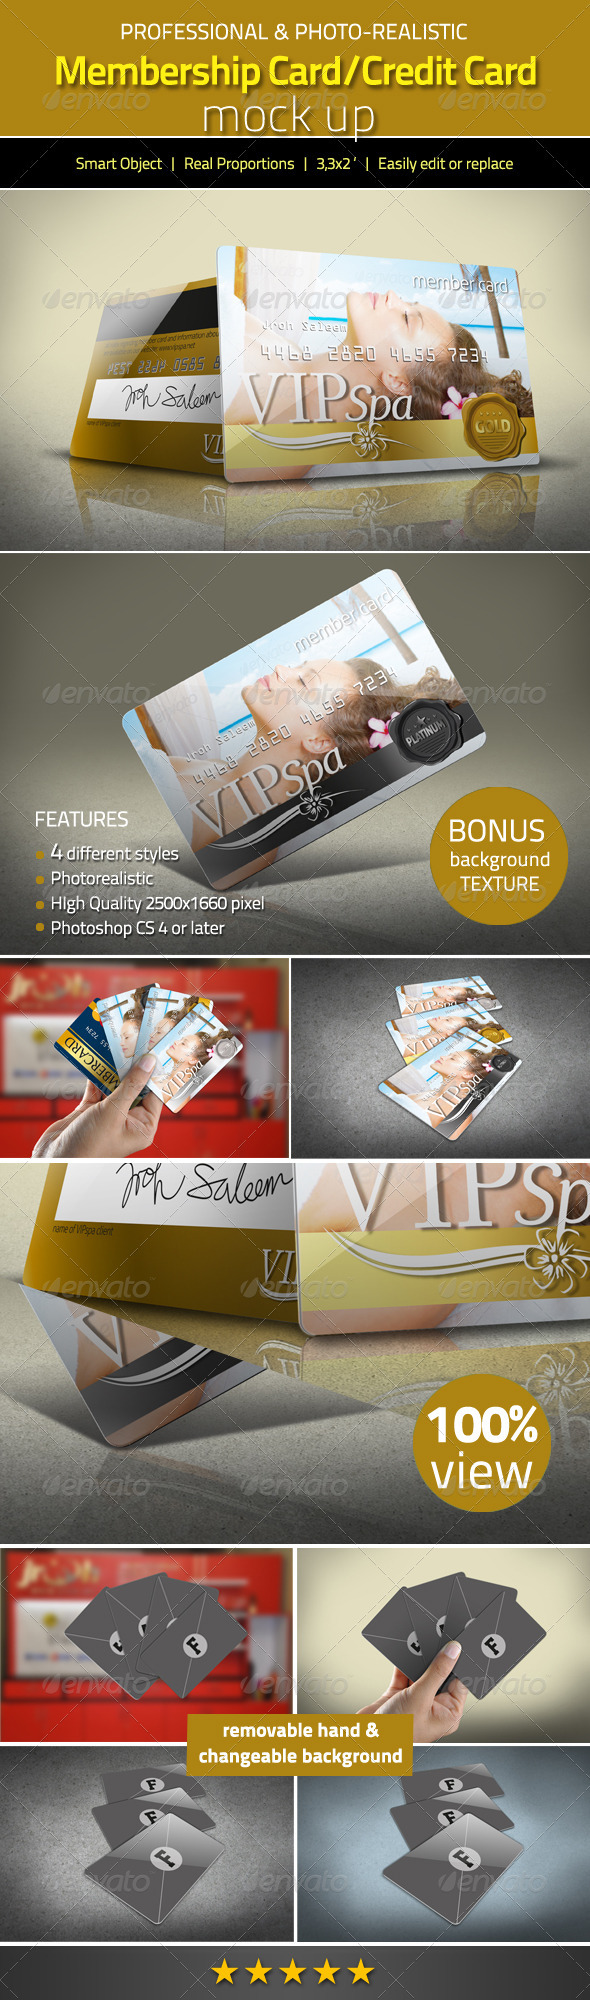 GraphicRiver Photorealistic Membership Card Credit Card Mock Up 3088198